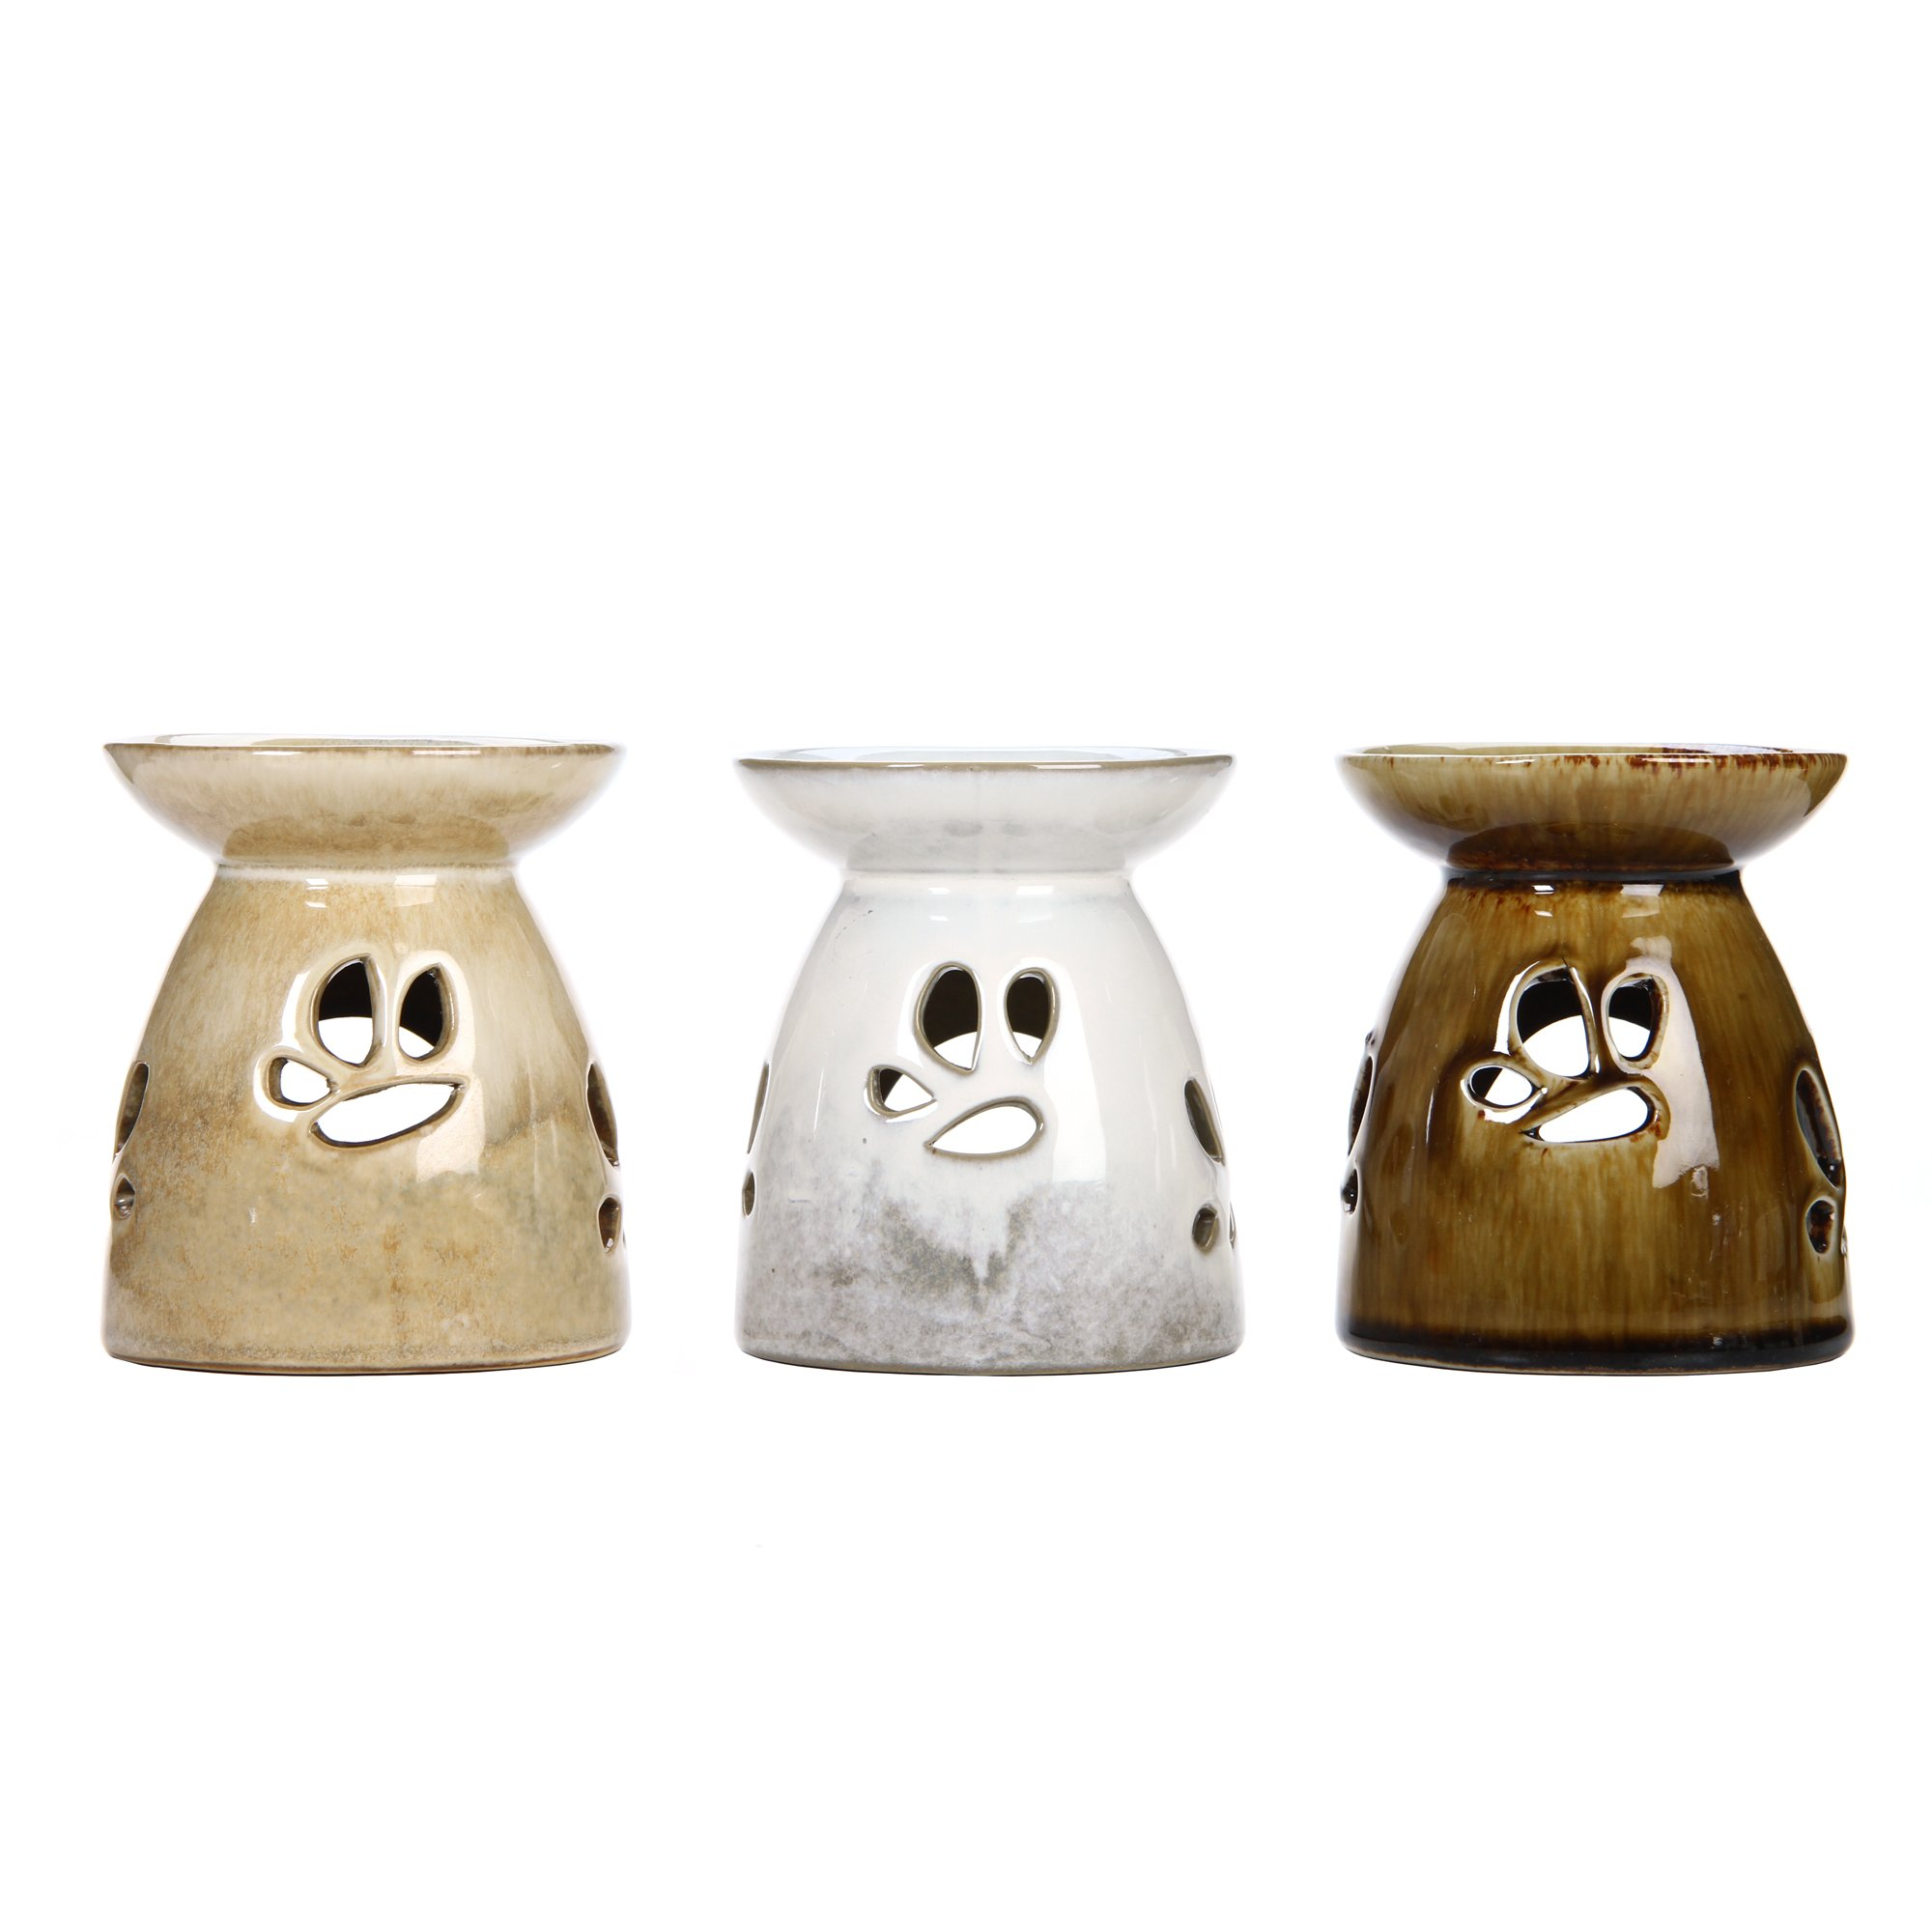 Hosley Set of 3 Assorted Ceramic Oil Warmers - 4.3'' High. Antique Brown, Cream and White. Ideal for Spa and Aromatherapy. Use Brand Essential Oils and Fragrance Oils. O6